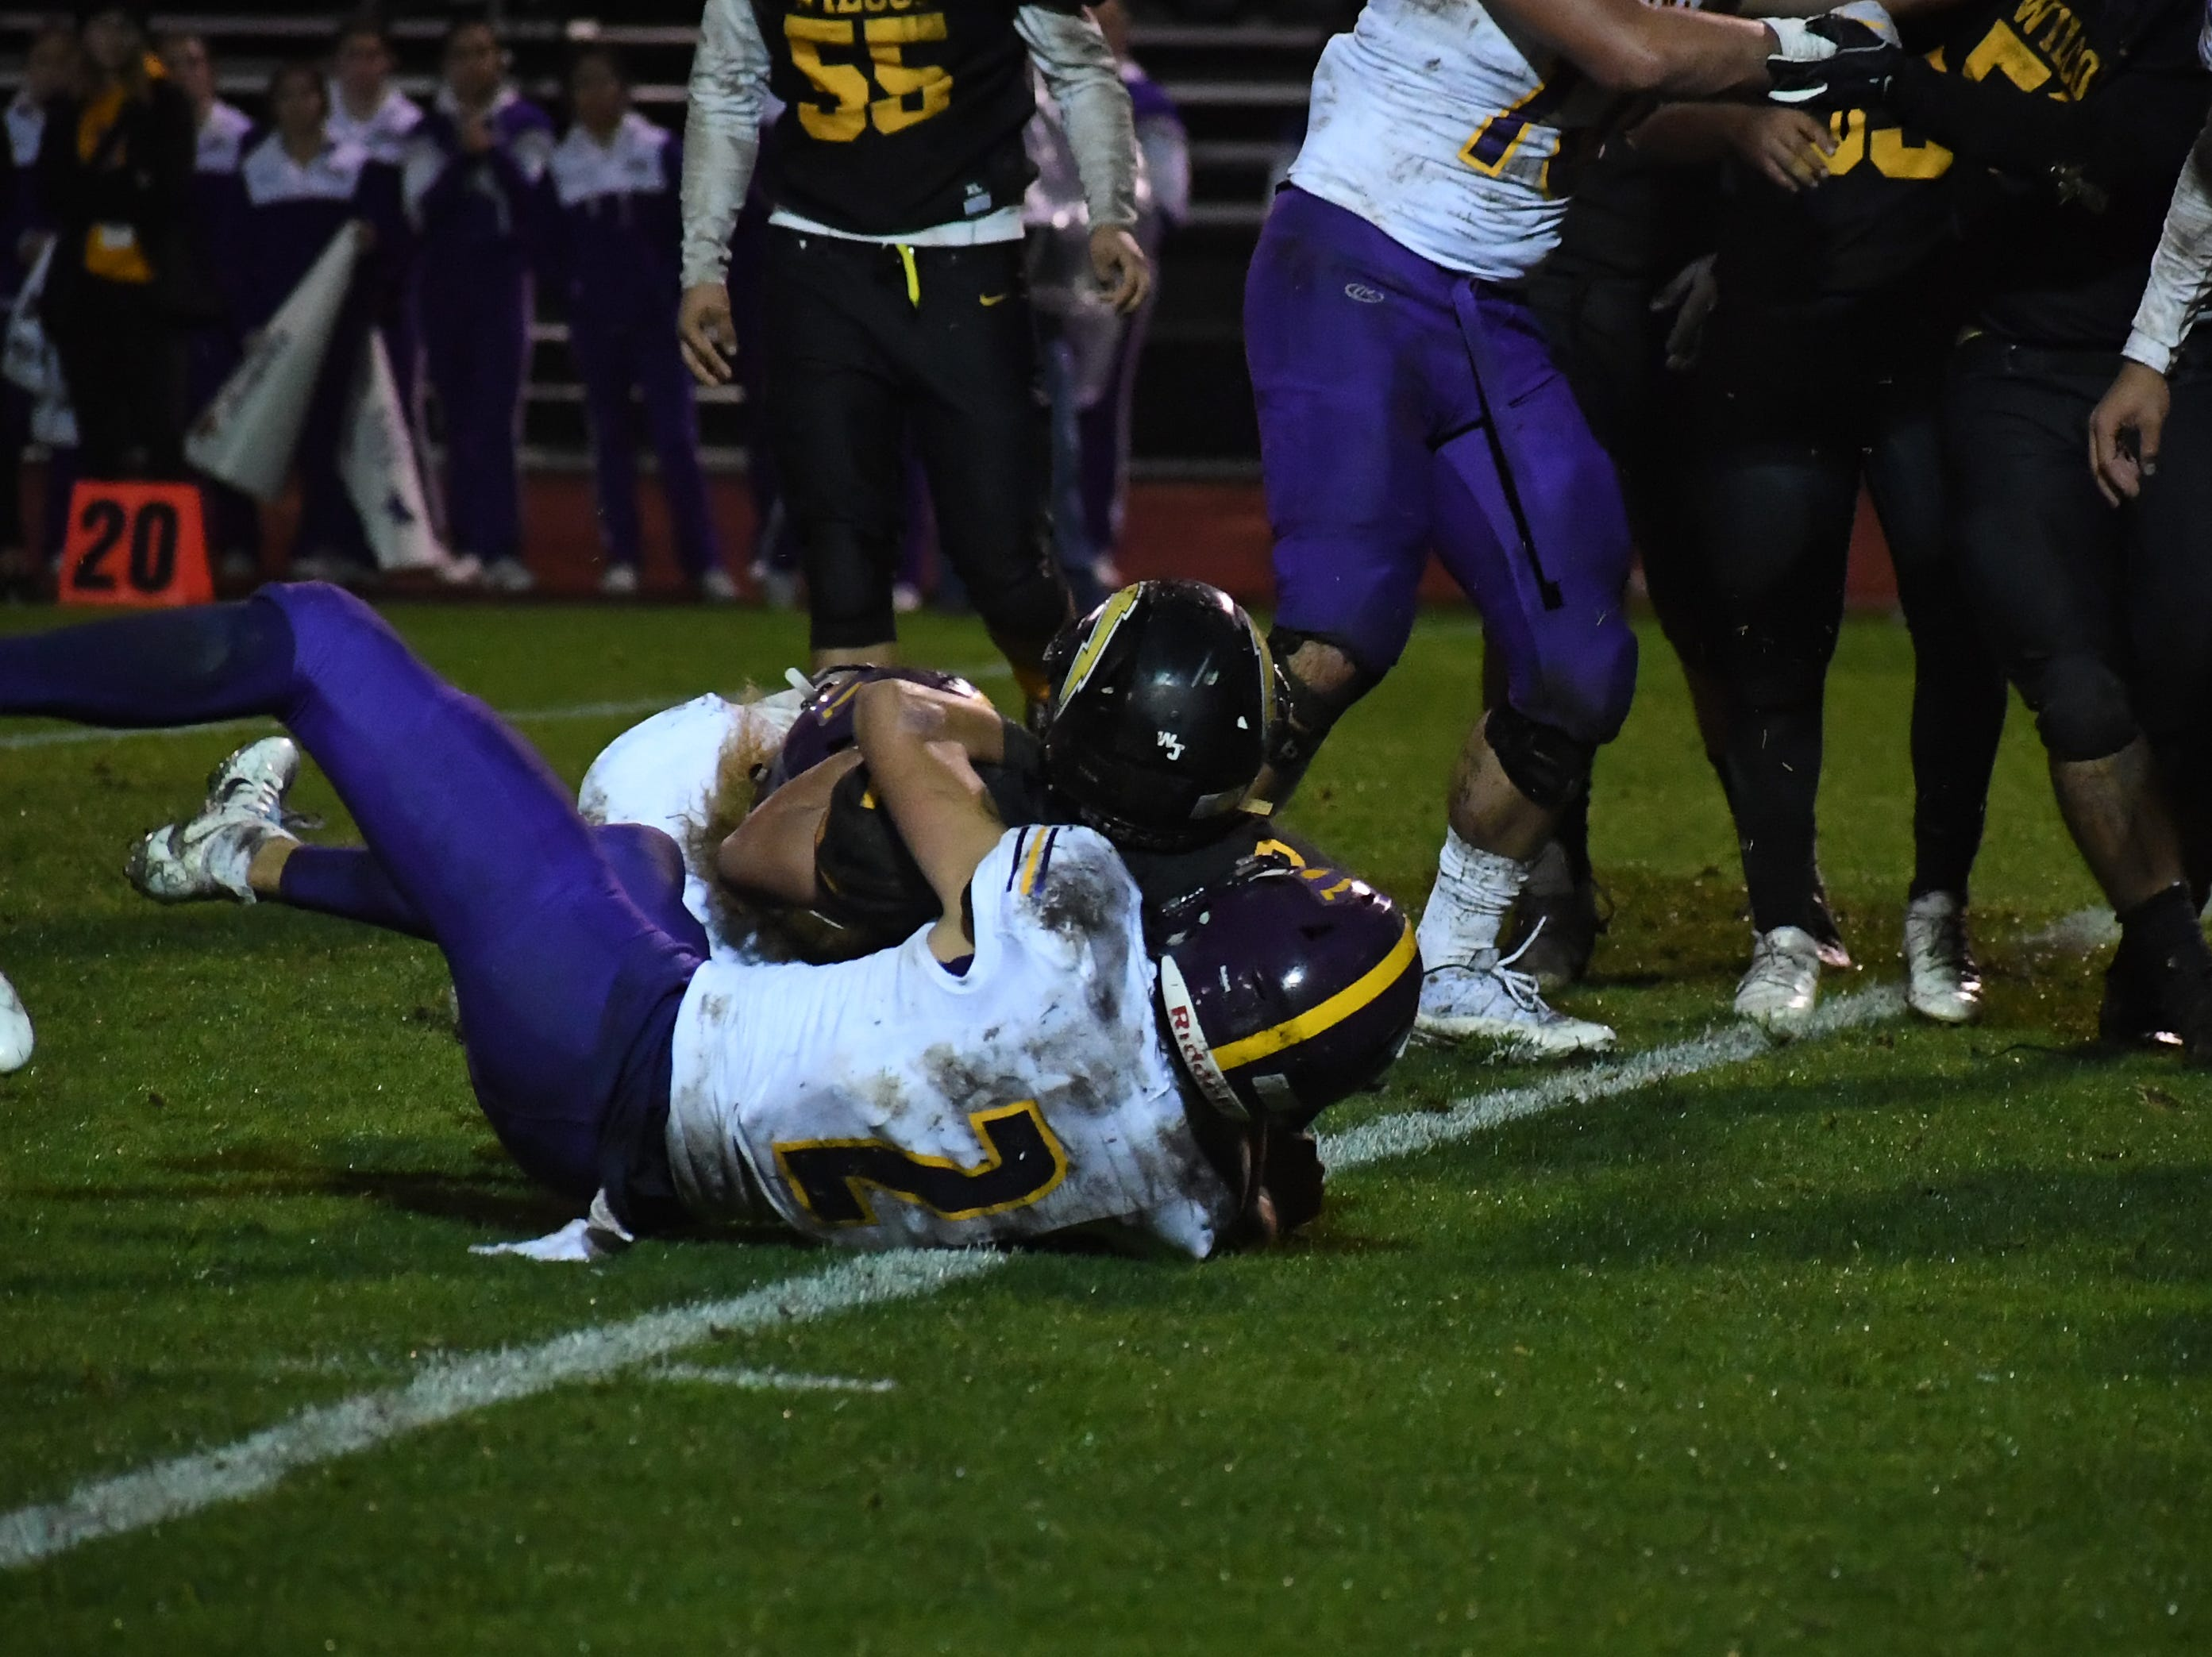 Linebacker Nick Marquez and safety Zachary Robison (2) tackles a Wilcox ball-carrier.